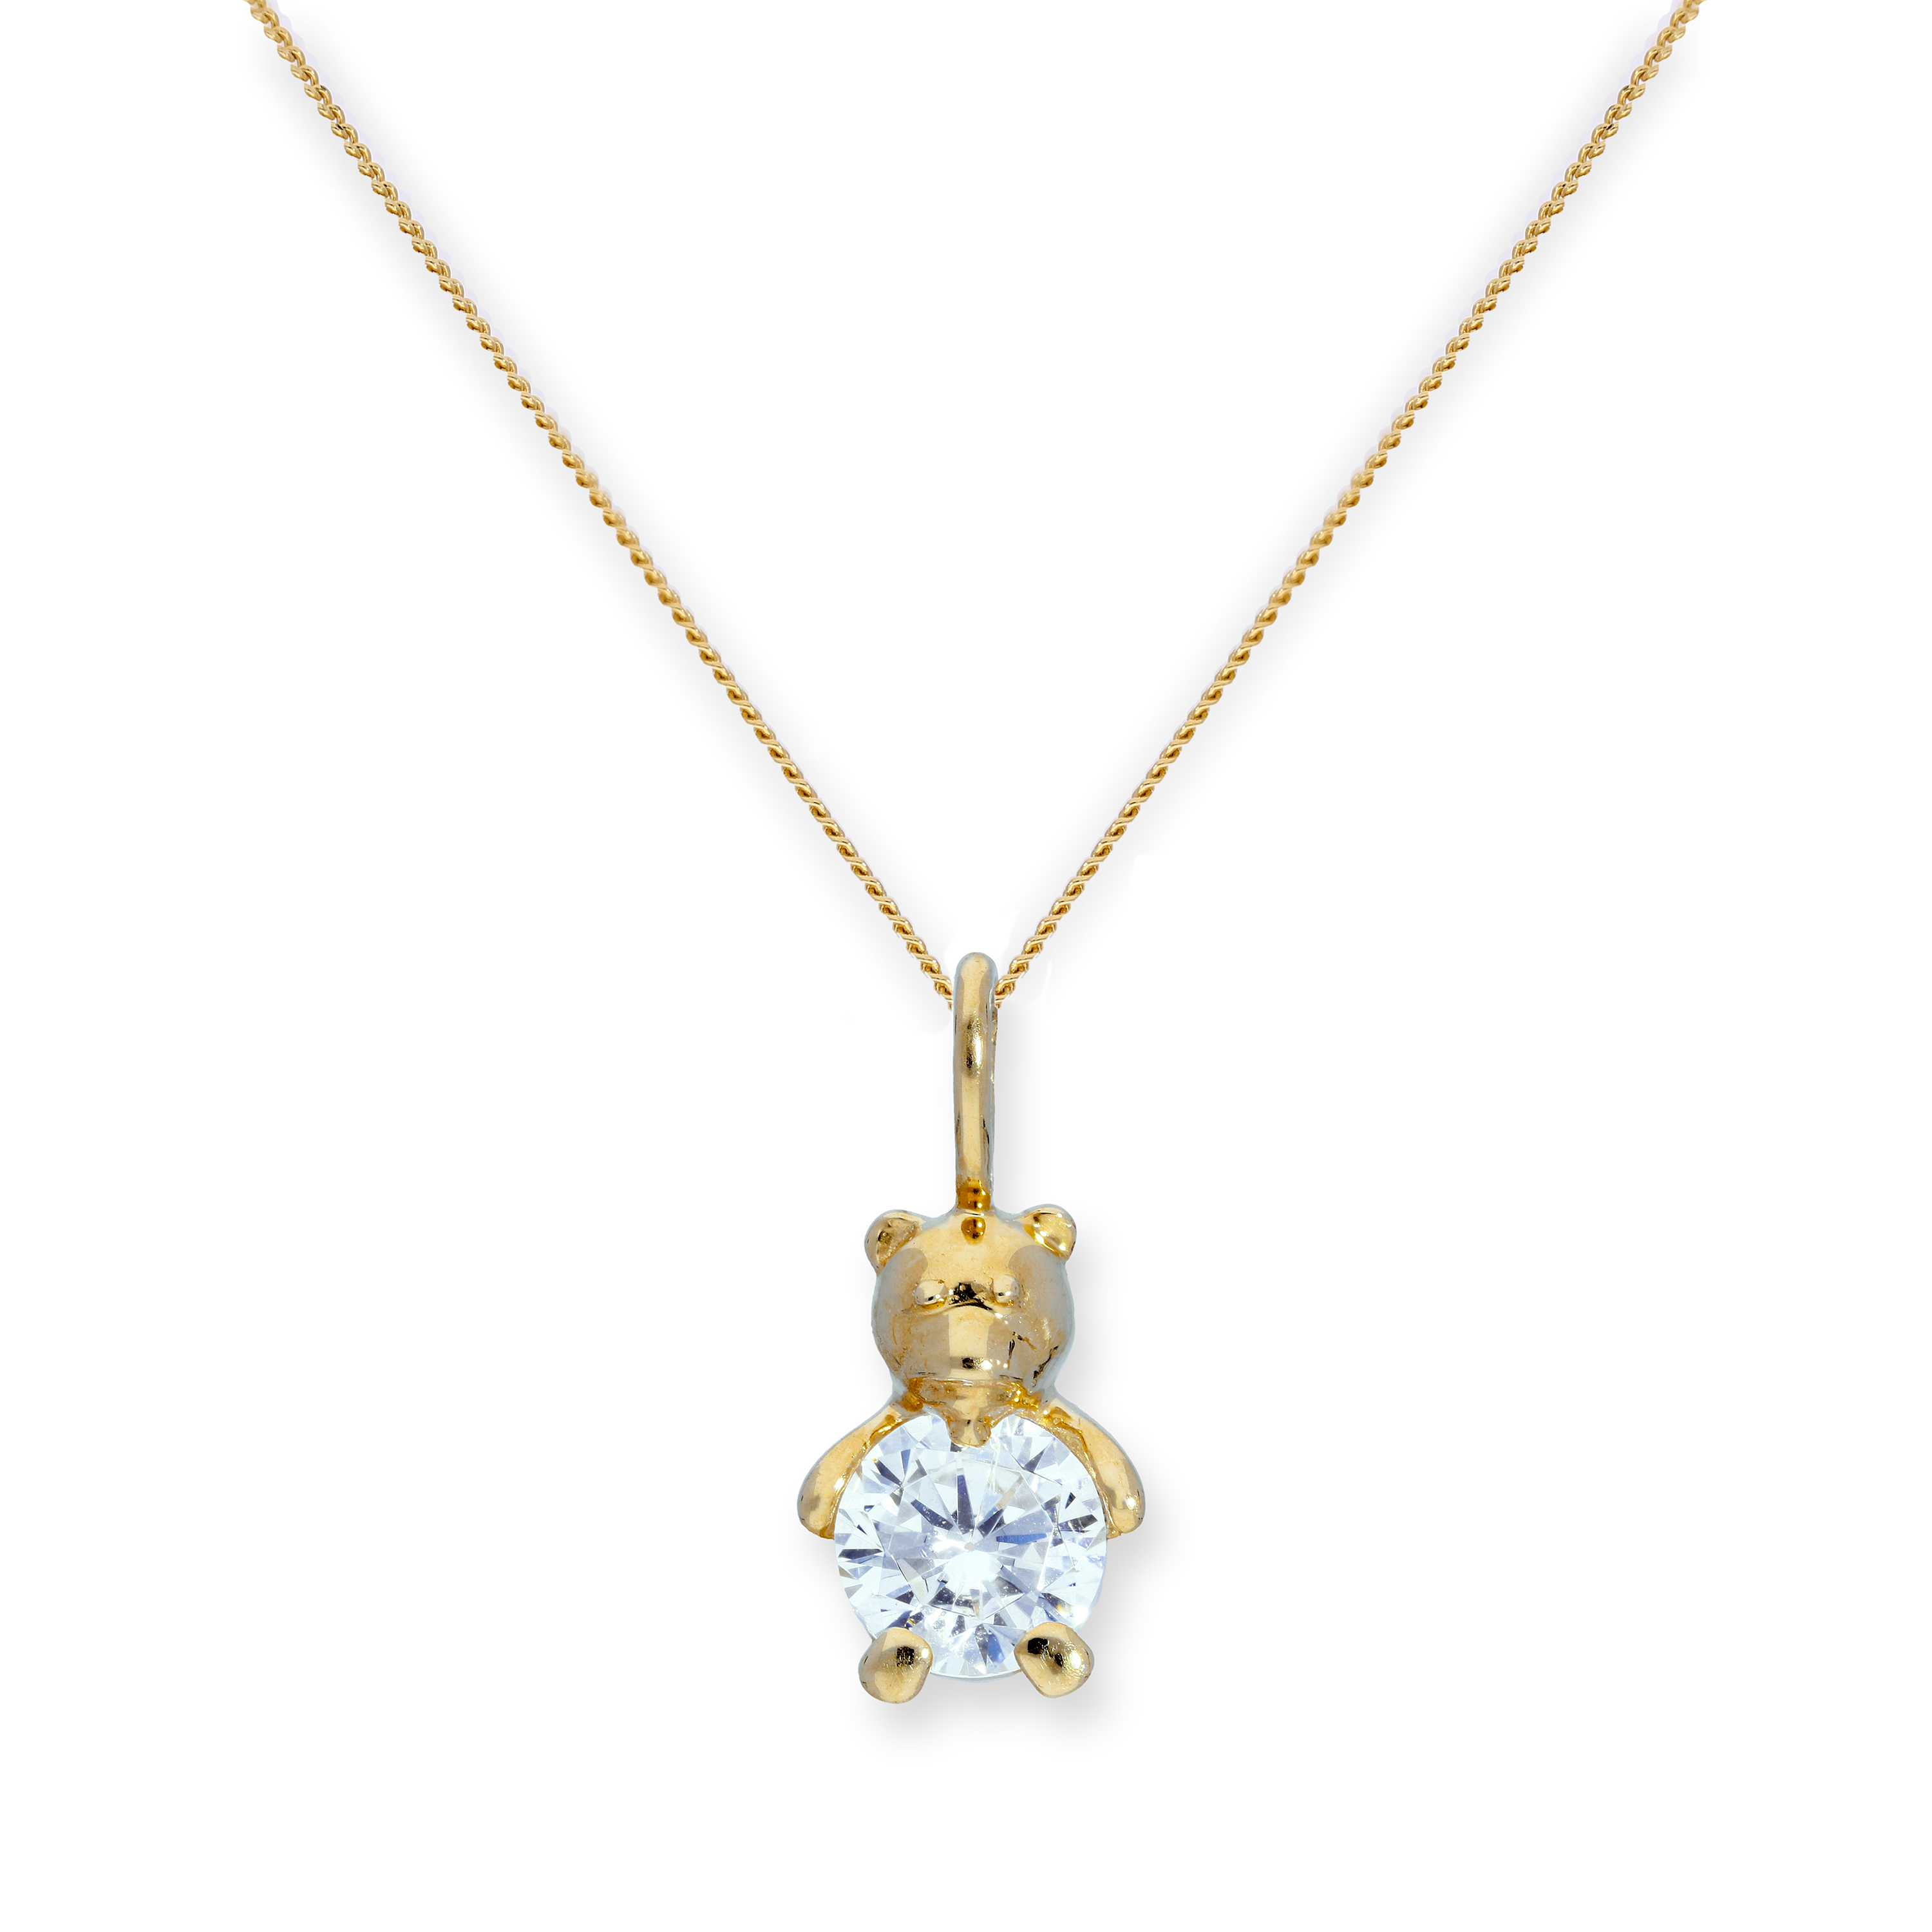 An image of 9ct Gold Clear CZ Crystal Teddy Bear Pendant on Chain 16 20 Inches